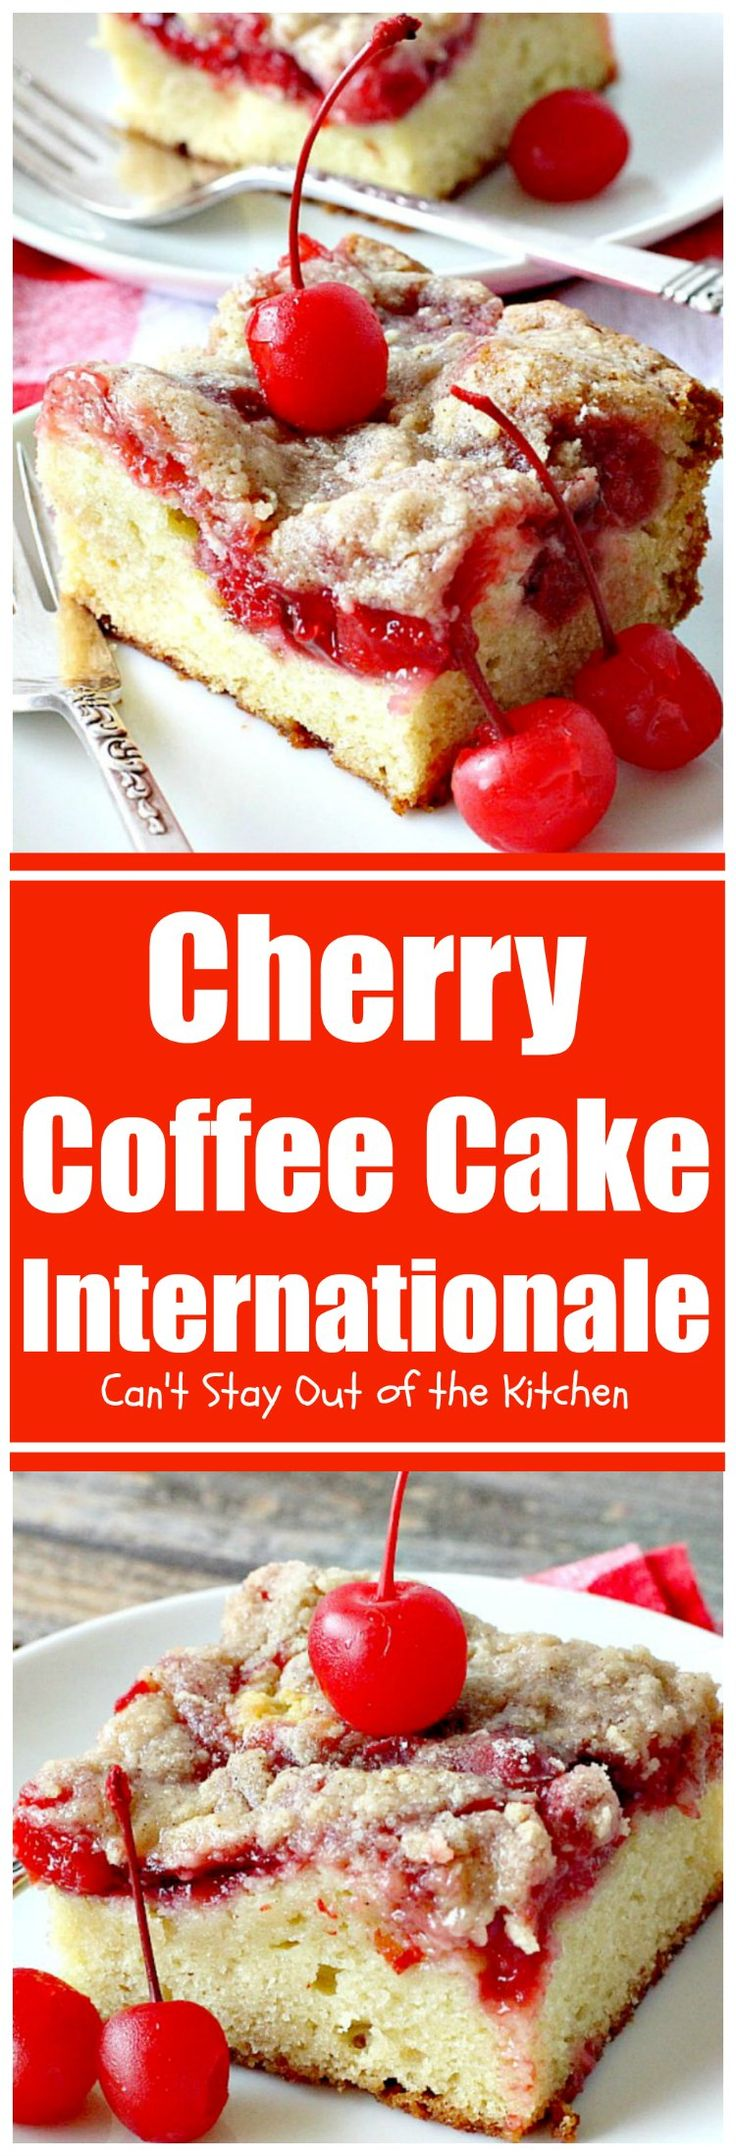 Cherry Coffee Cake Internationale | Can't Stay Out of the Kitchen